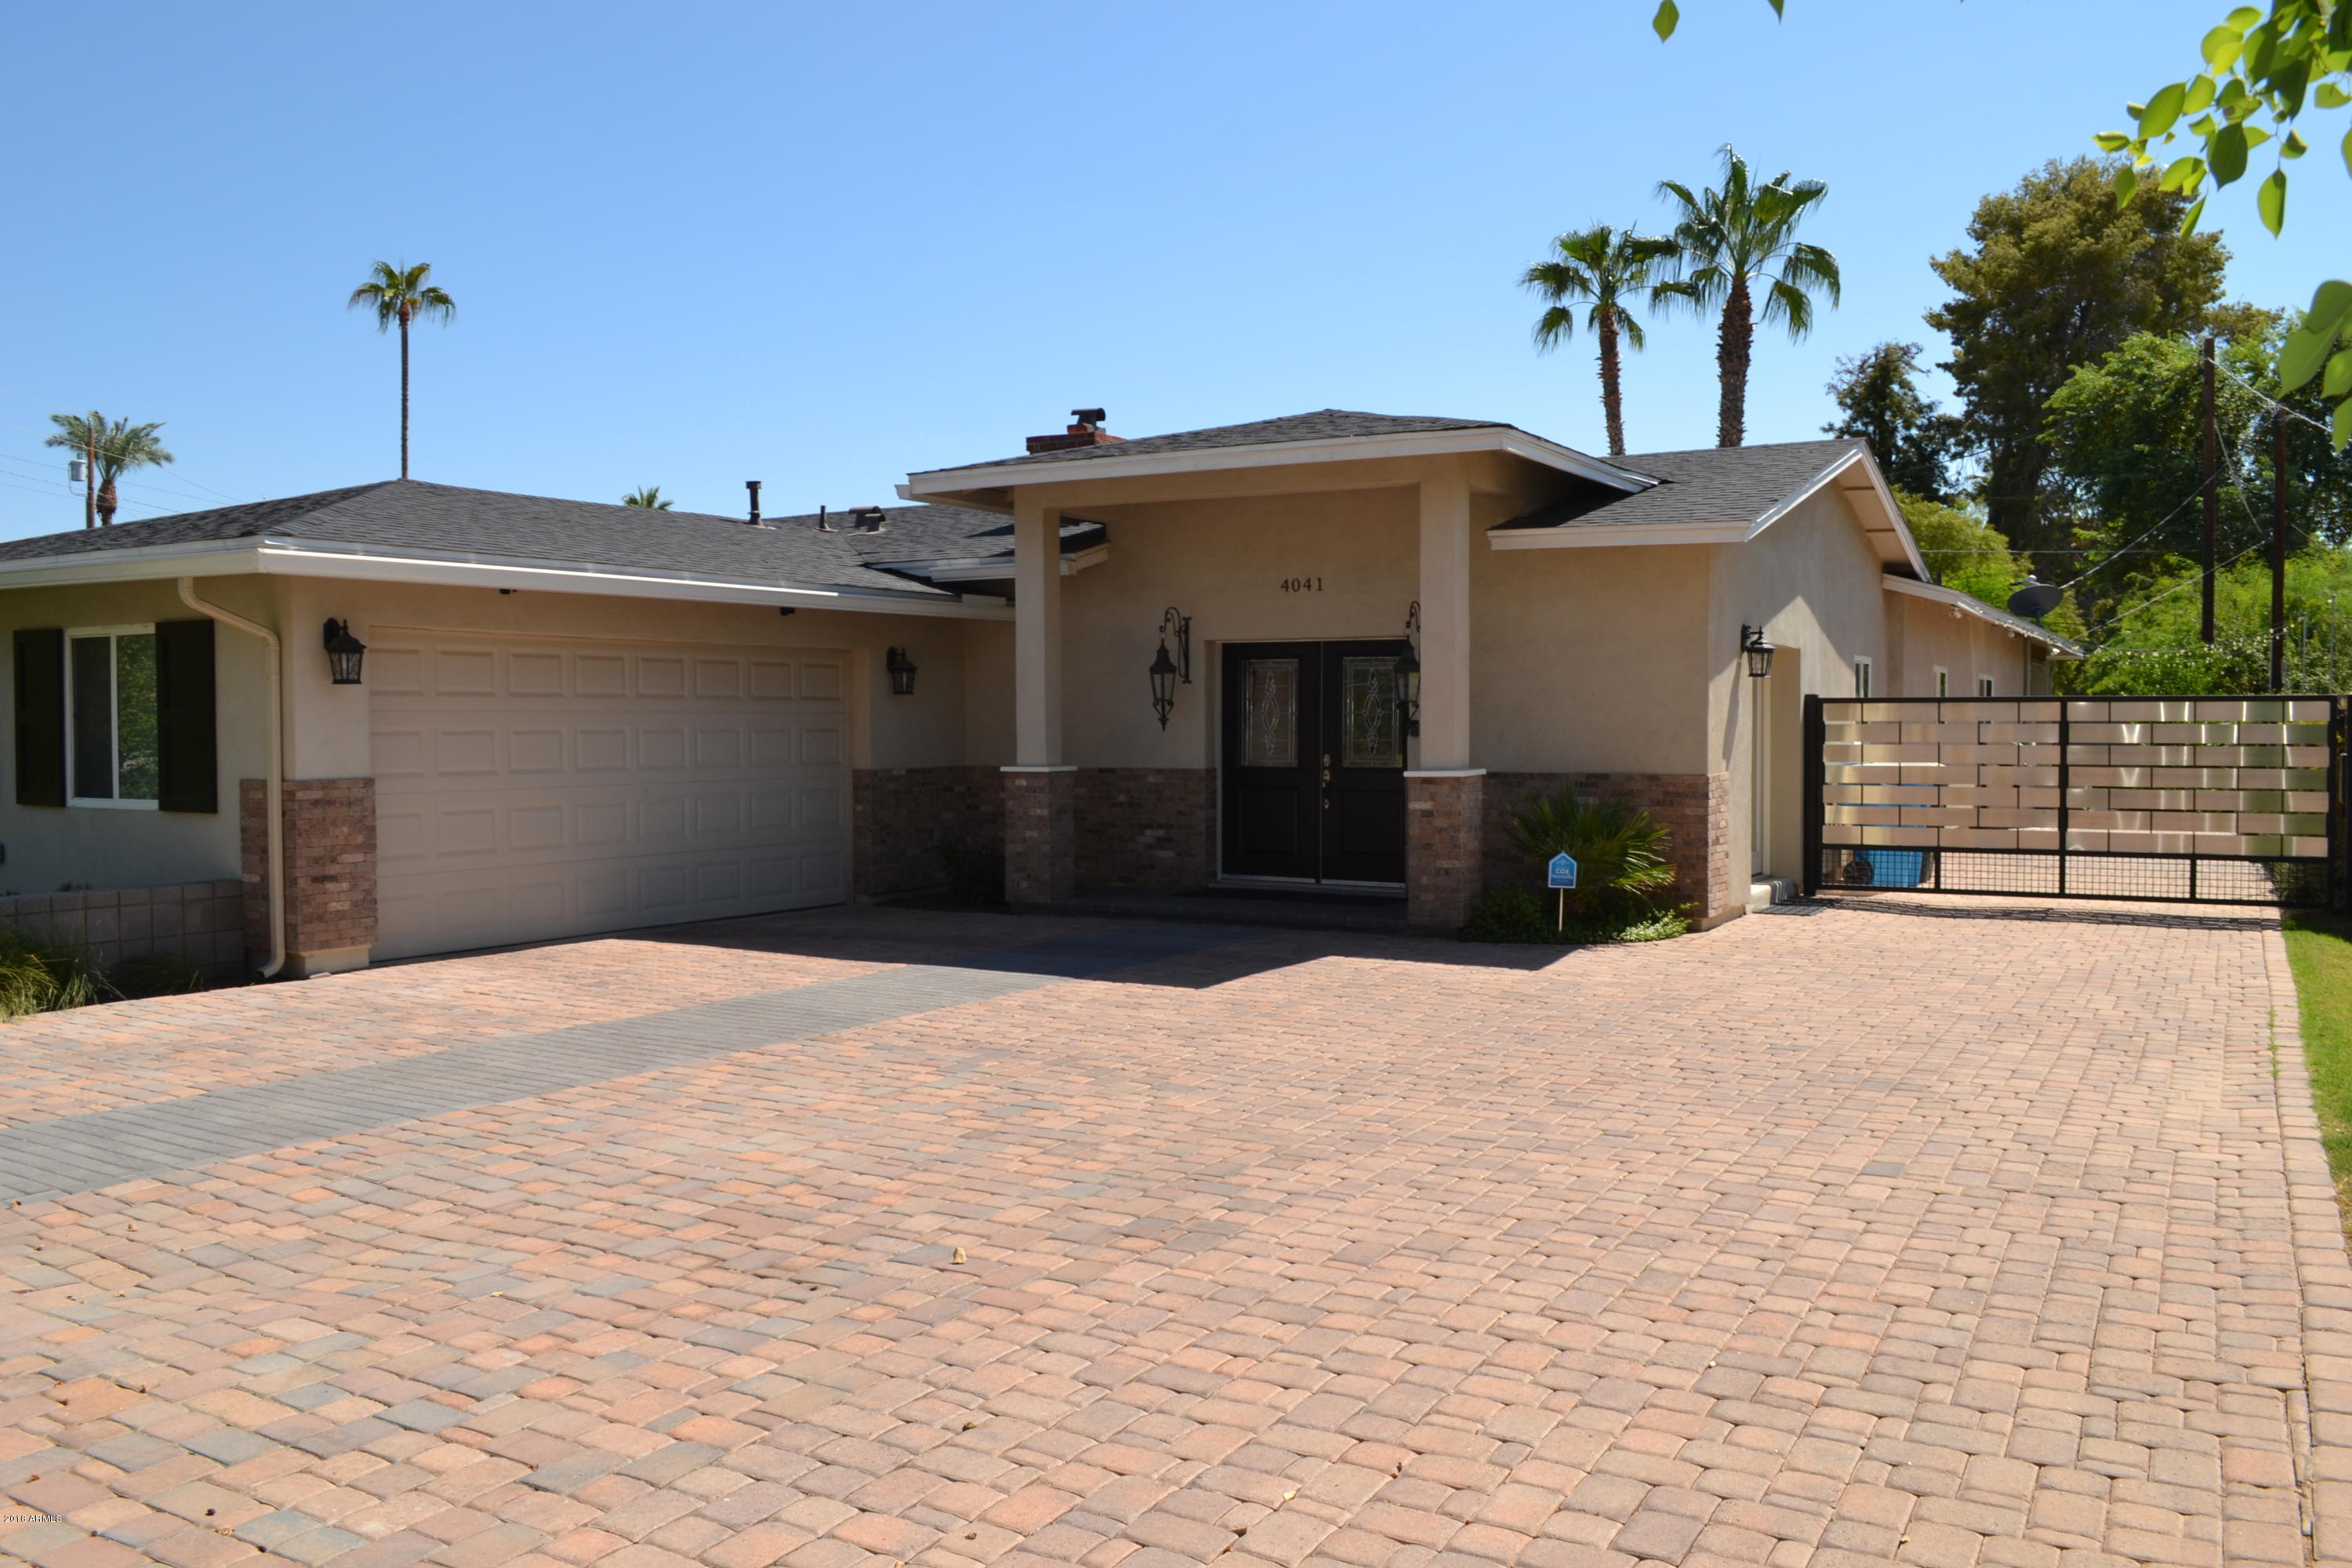 Photo of 4041 E OSBORN Road, Phoenix, AZ 85018